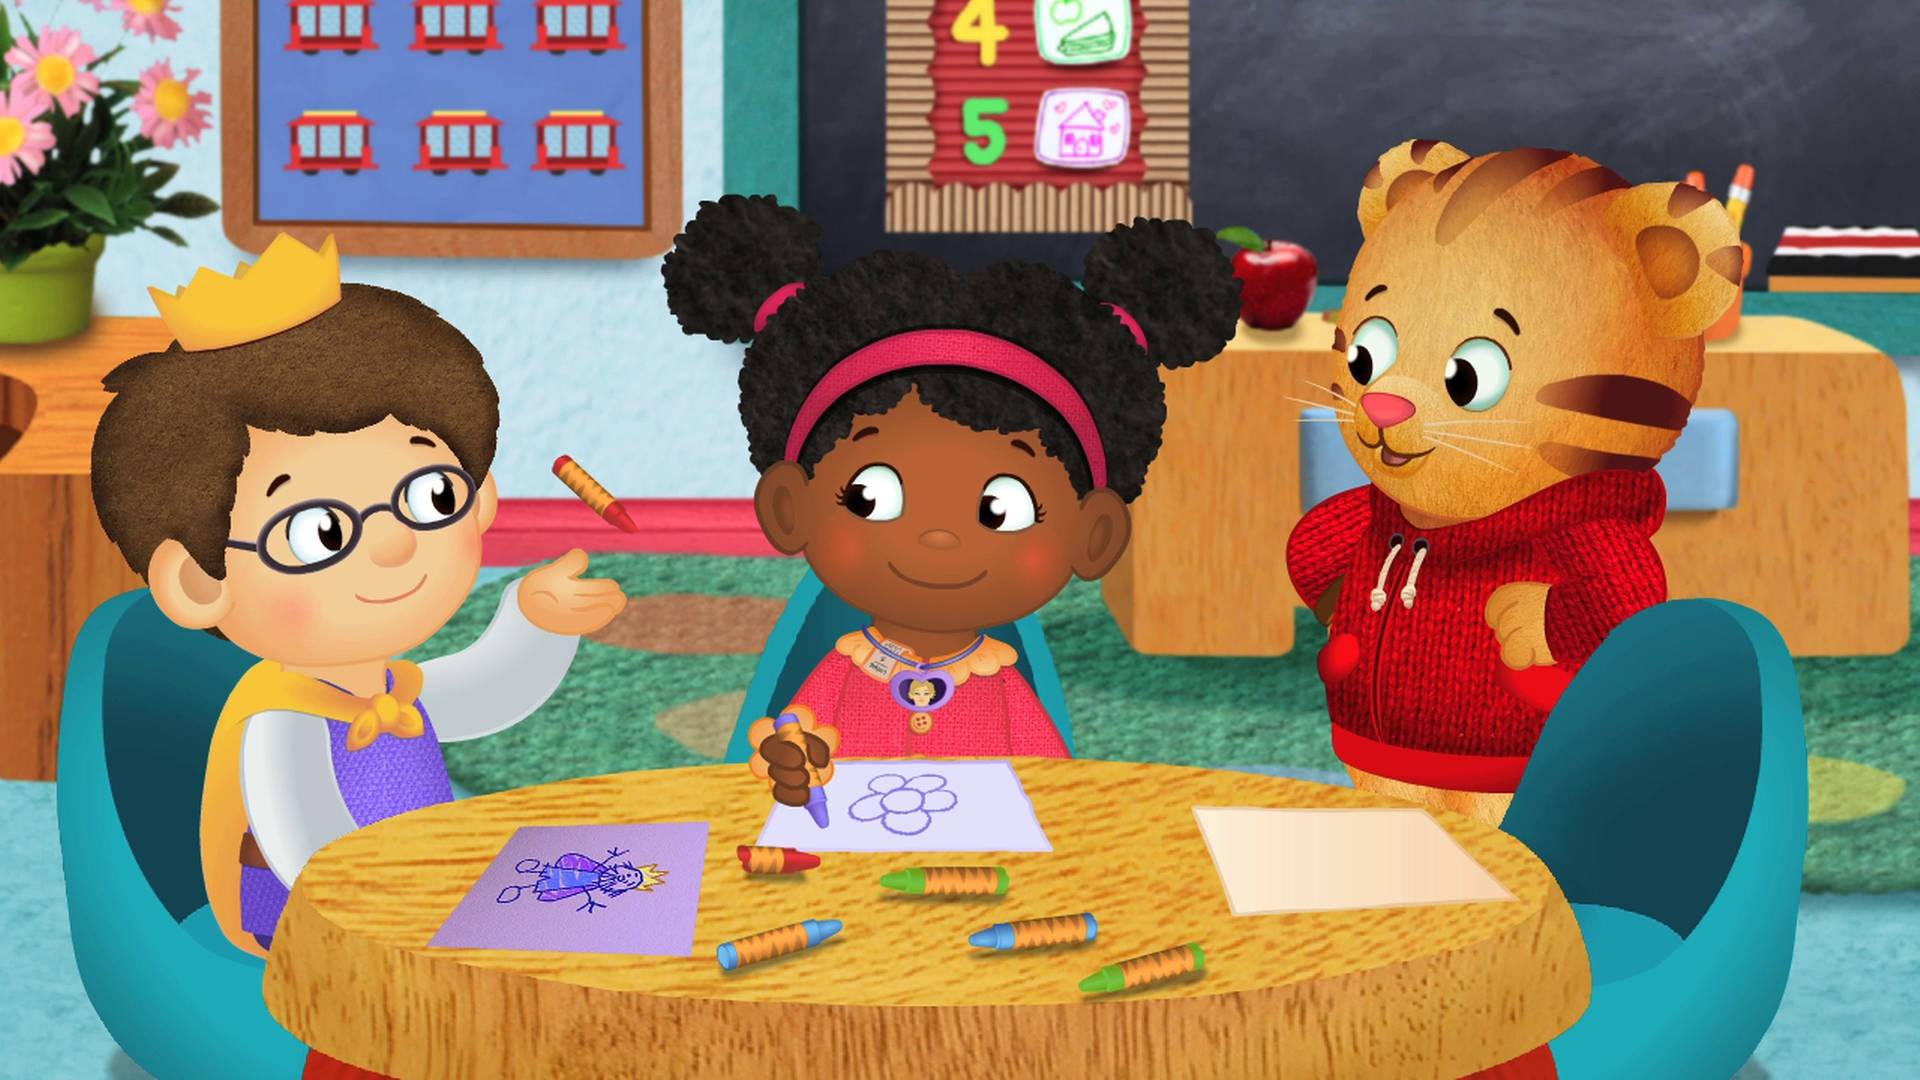 Daniel Tiger goes to school.